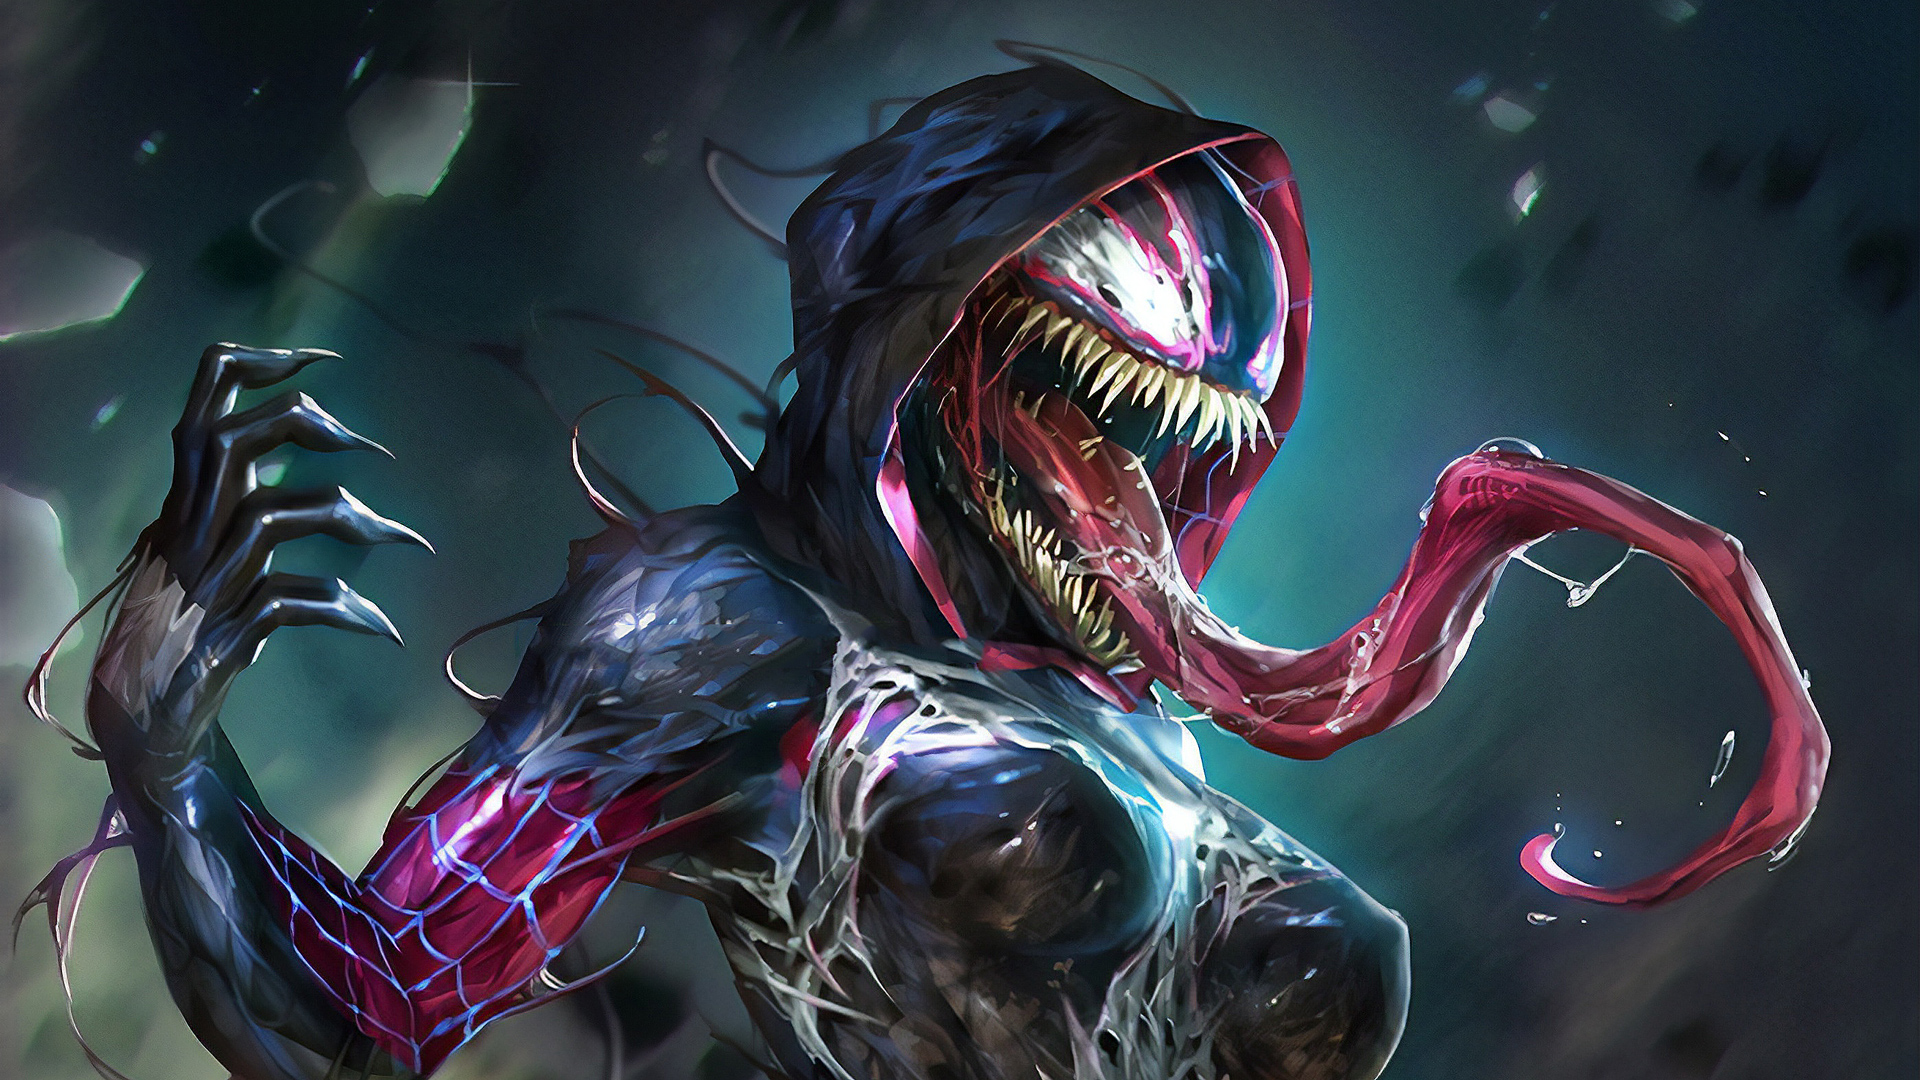 Art Lady Venom Hd Superheroes 4k Wallpapers Images Backgrounds